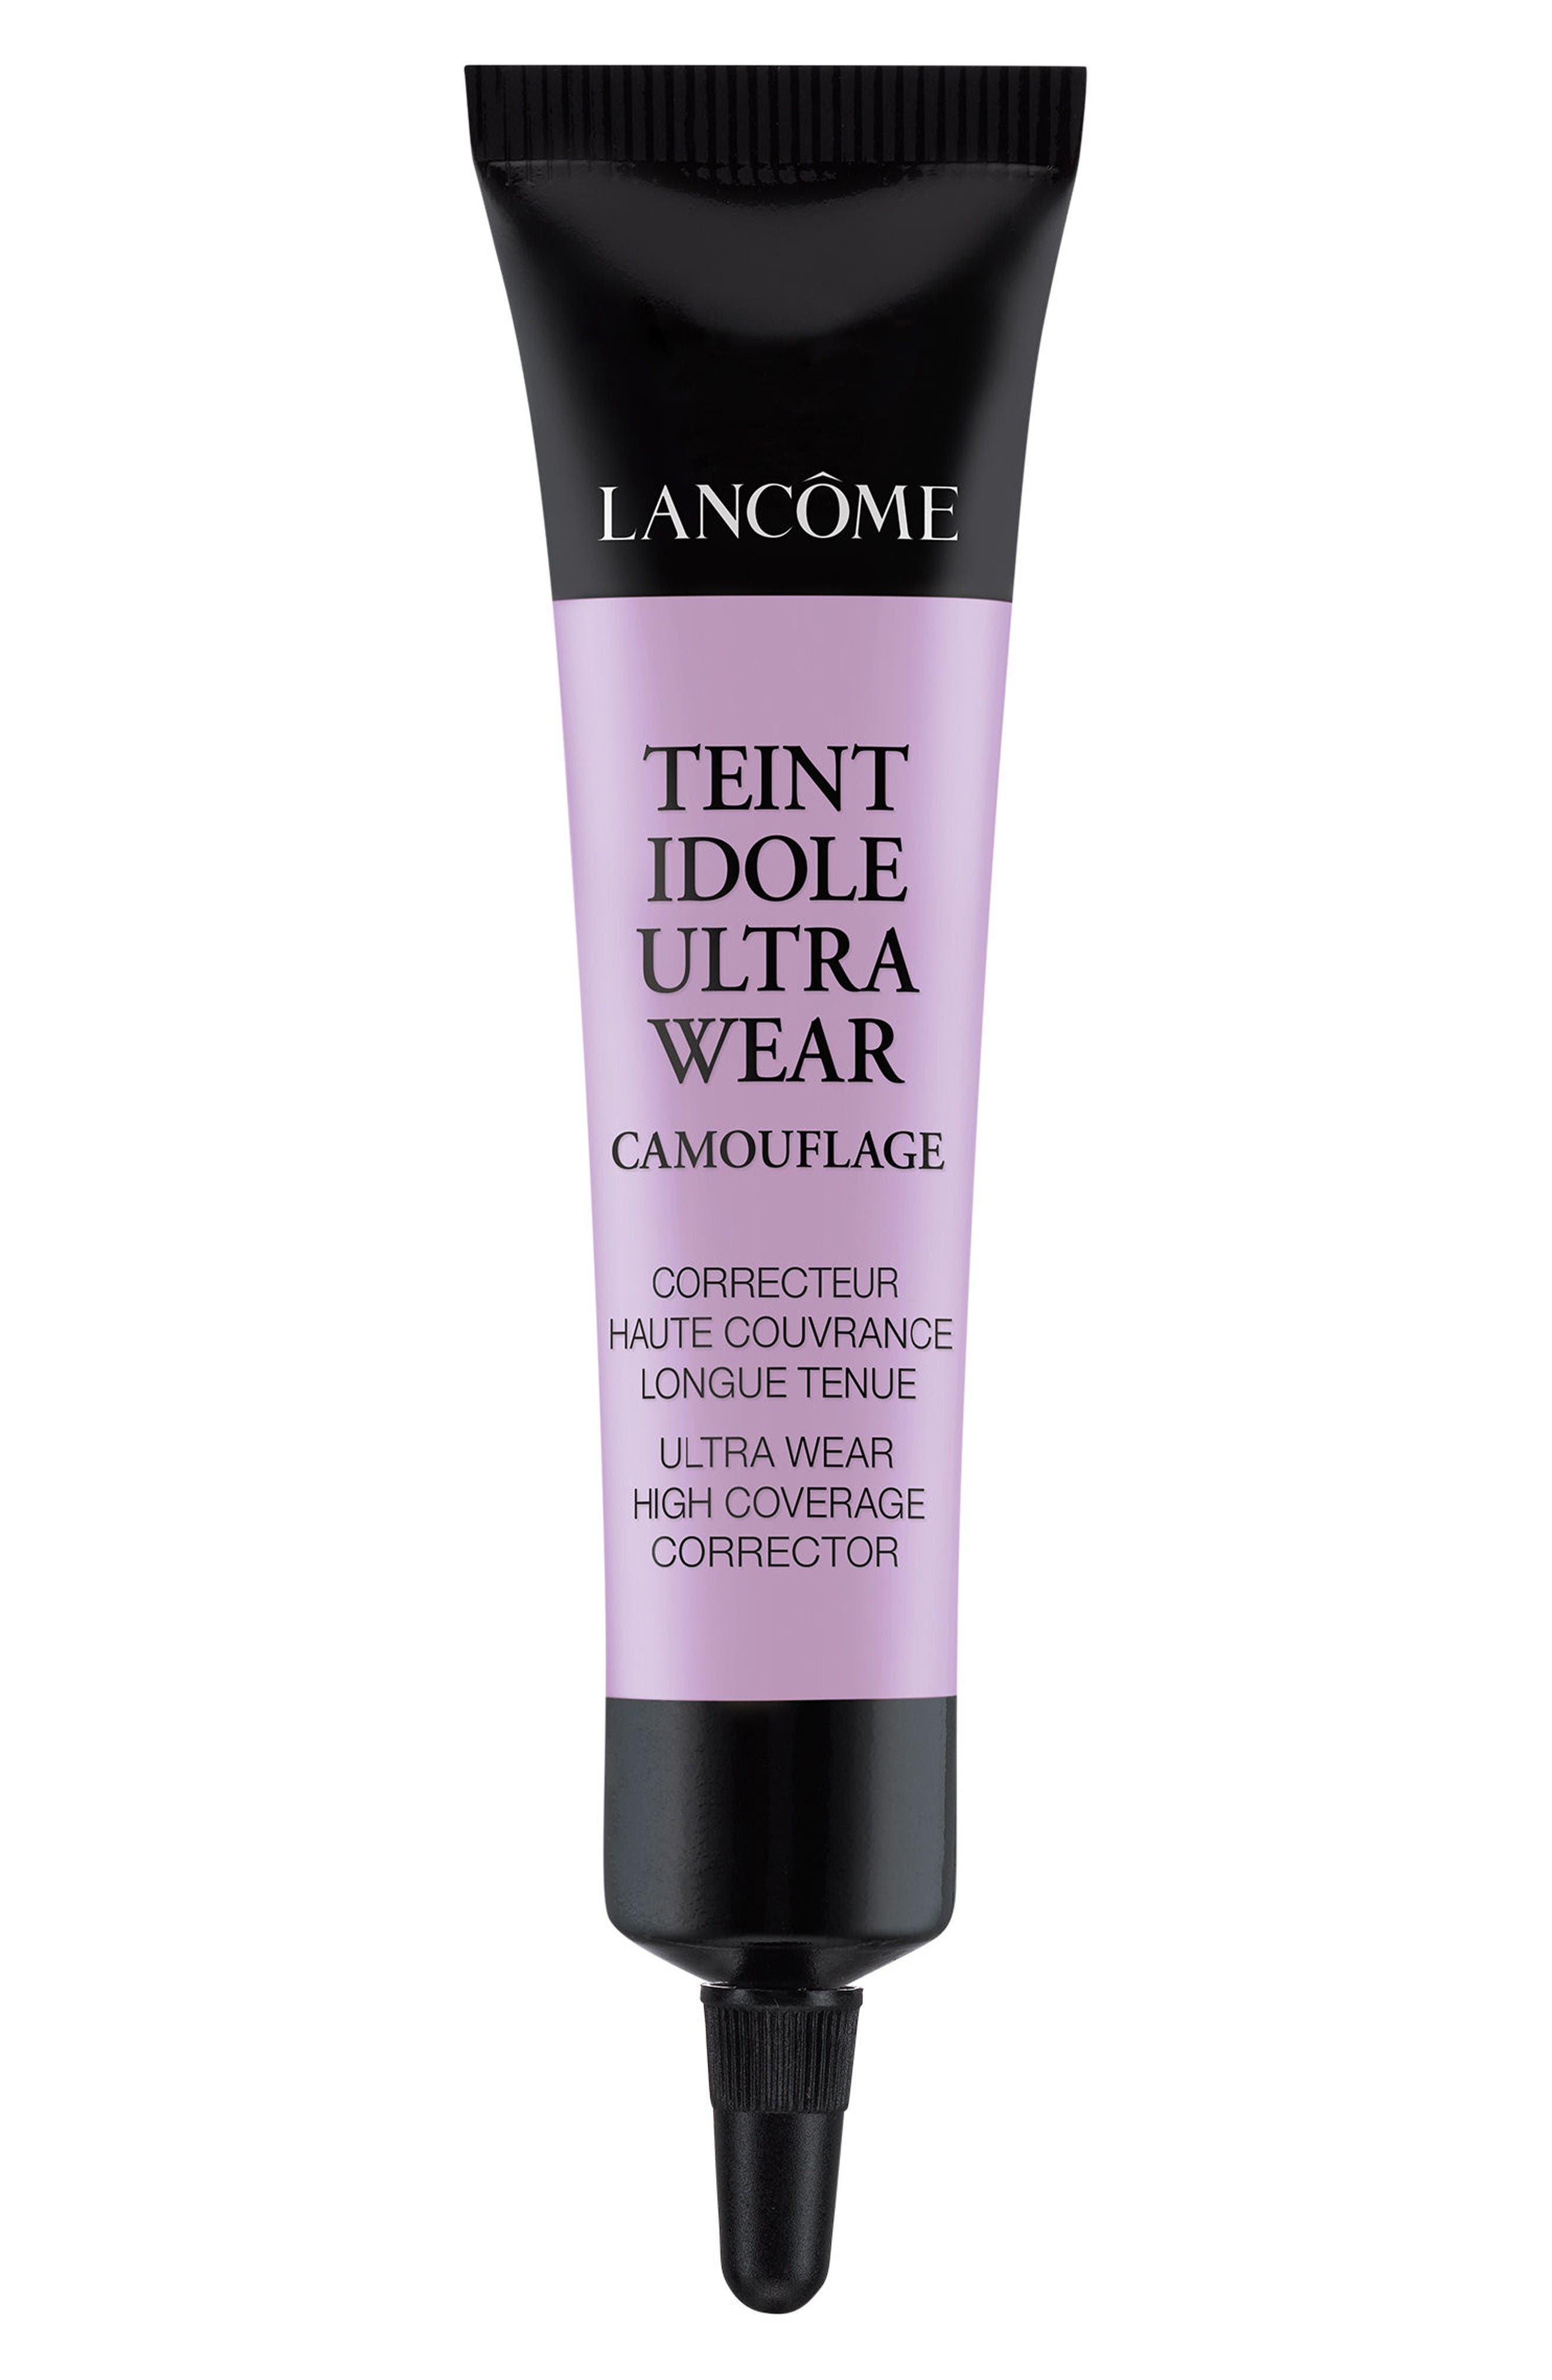 Teint Idole Ultra Wear Camouflage Corrector,                         Main,                         color, Lavender